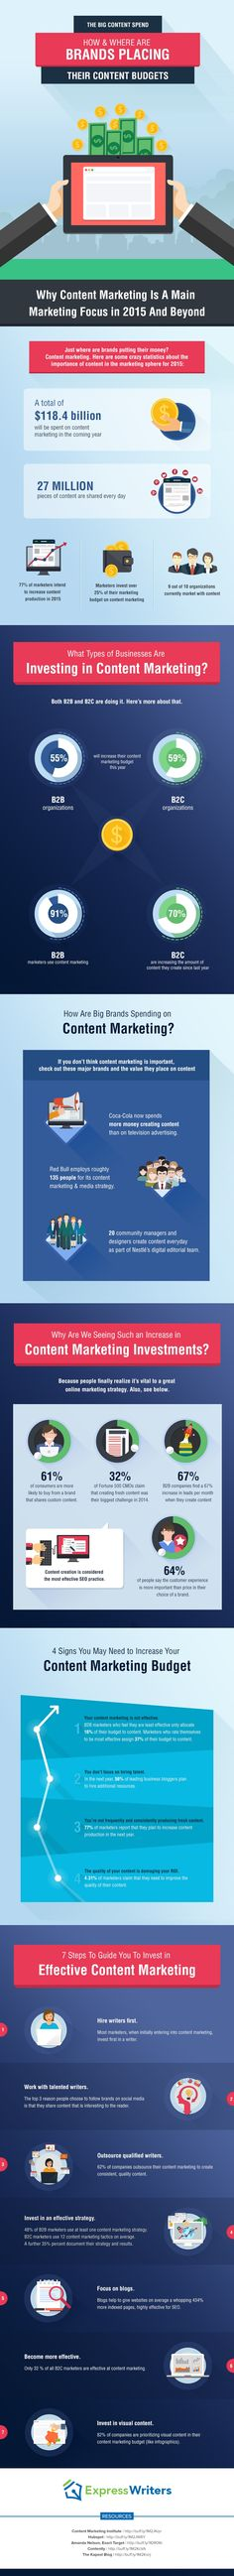 How & Where Brands Are Placing Their Content Budgets | #infographic via @HubSpot